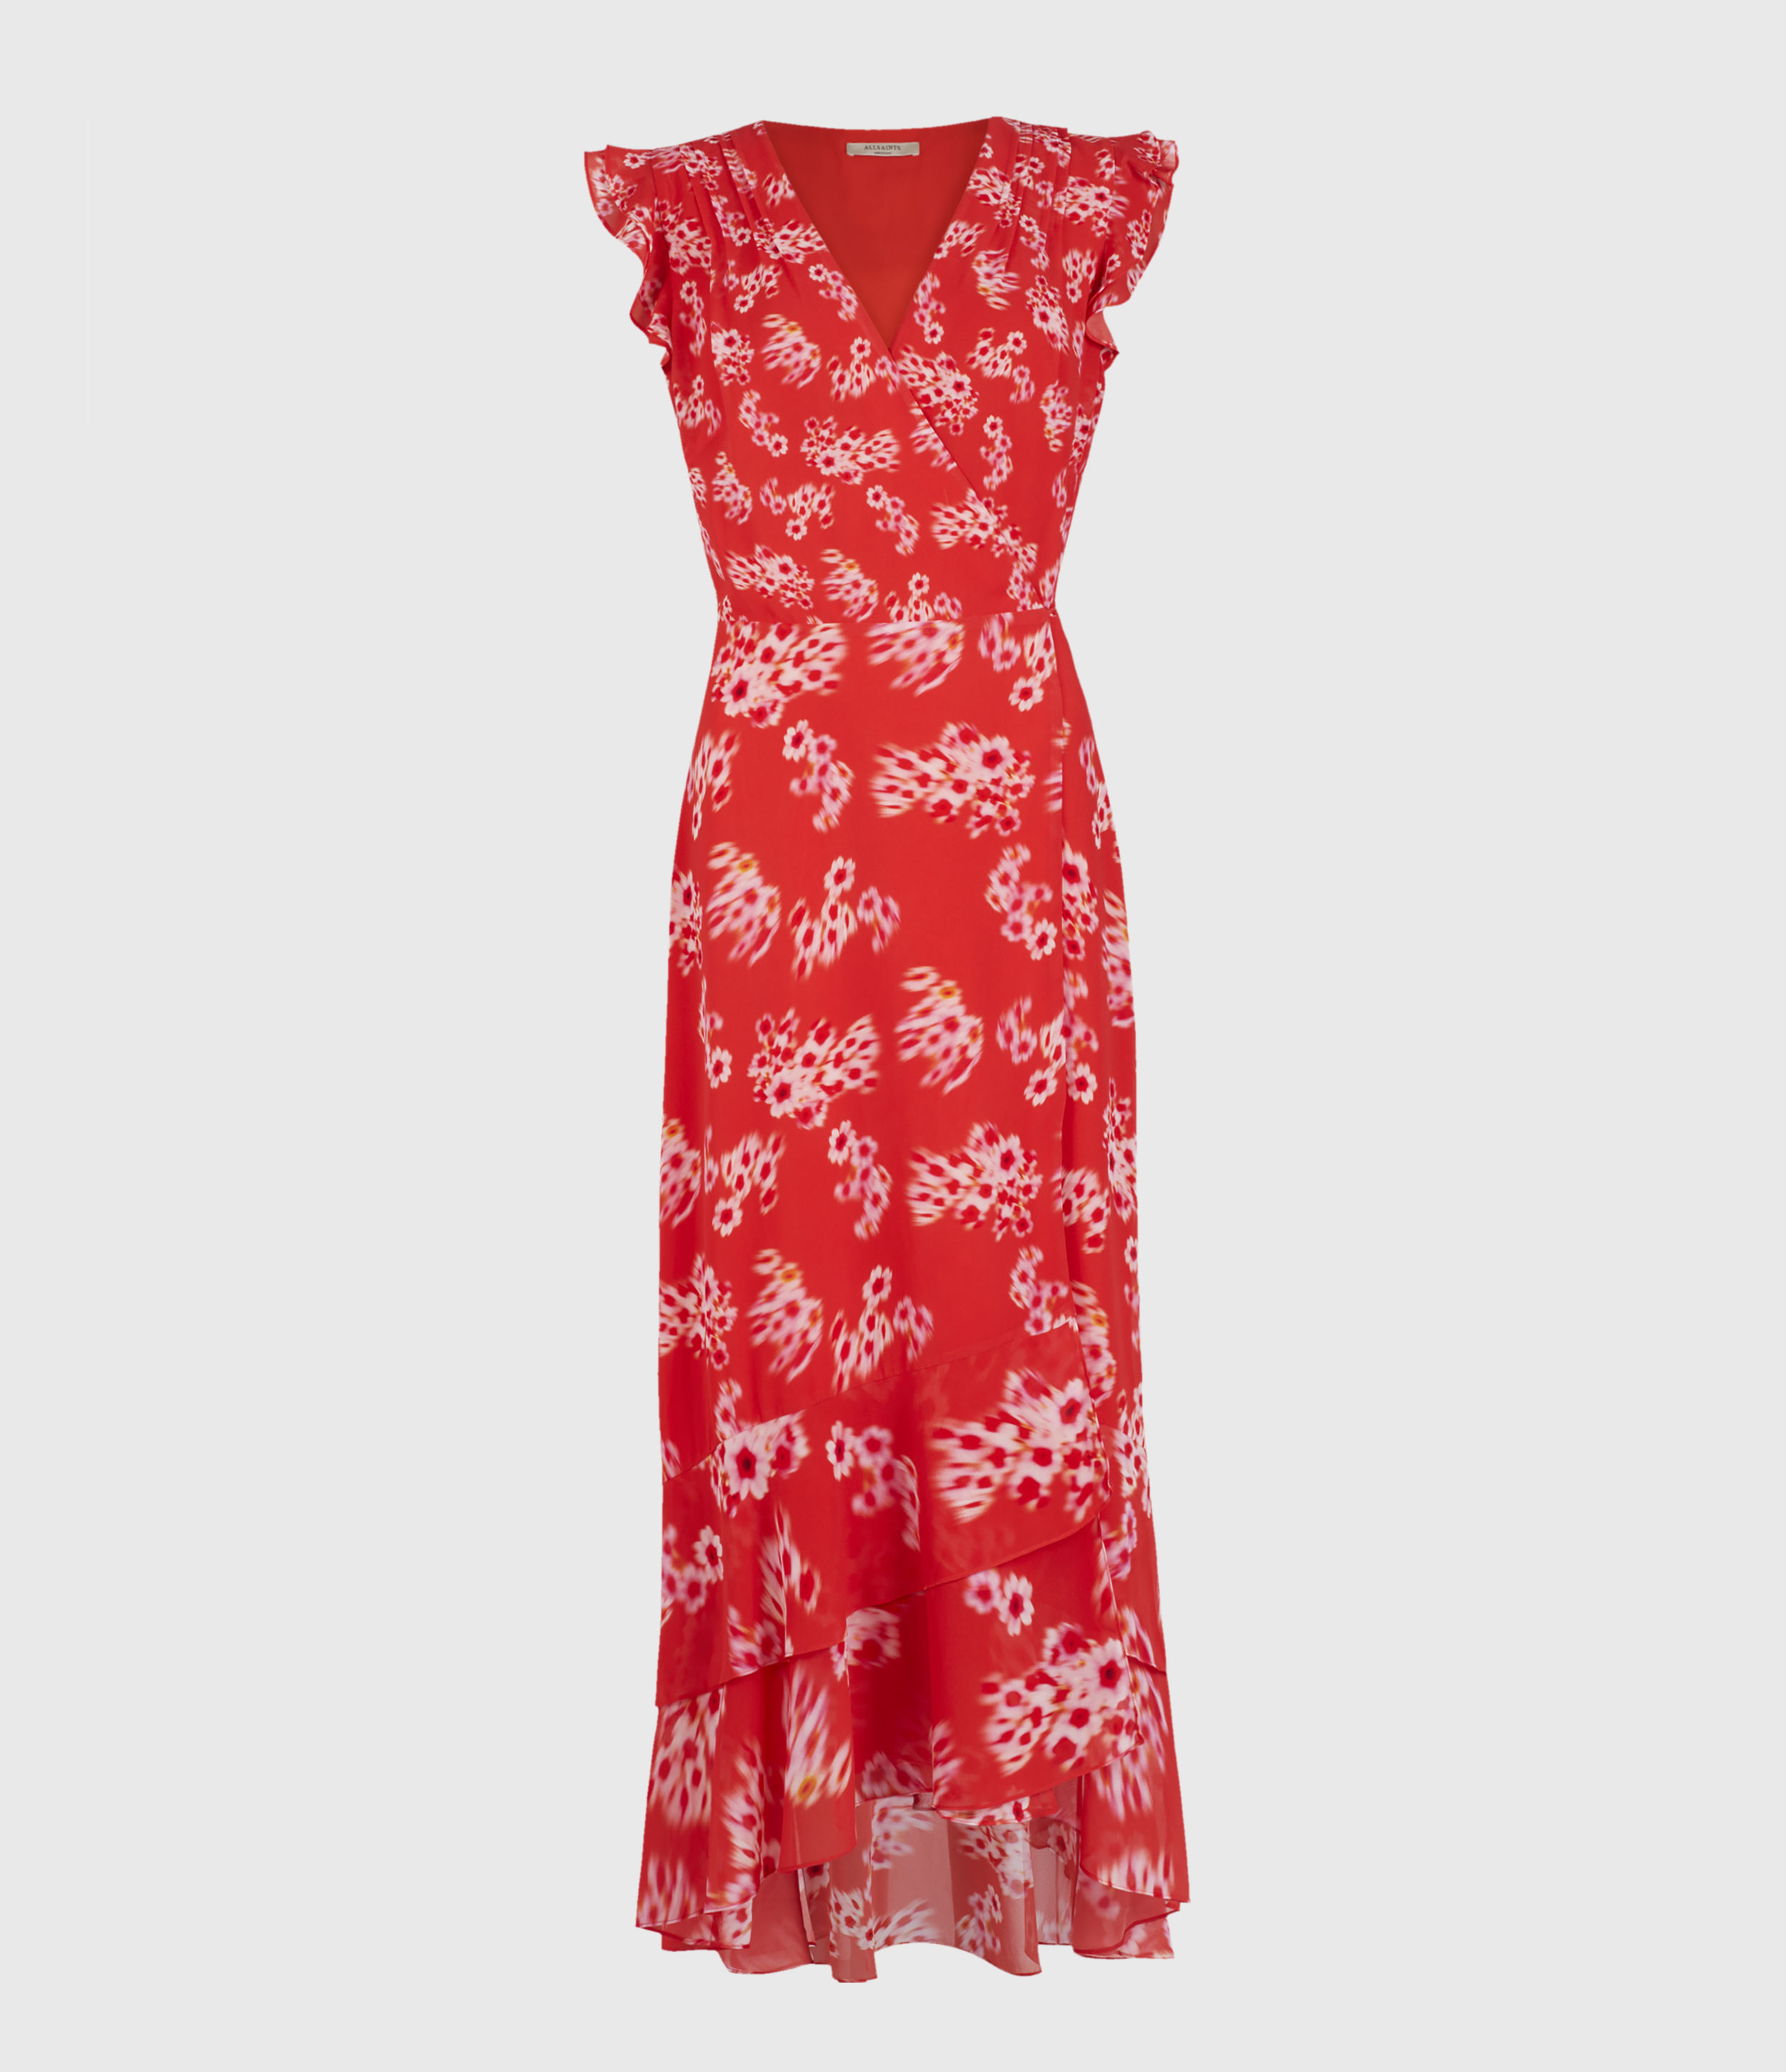 AllSaints Women's Floral Lightweight Dela Jasmine Dress, Red, Size: 10